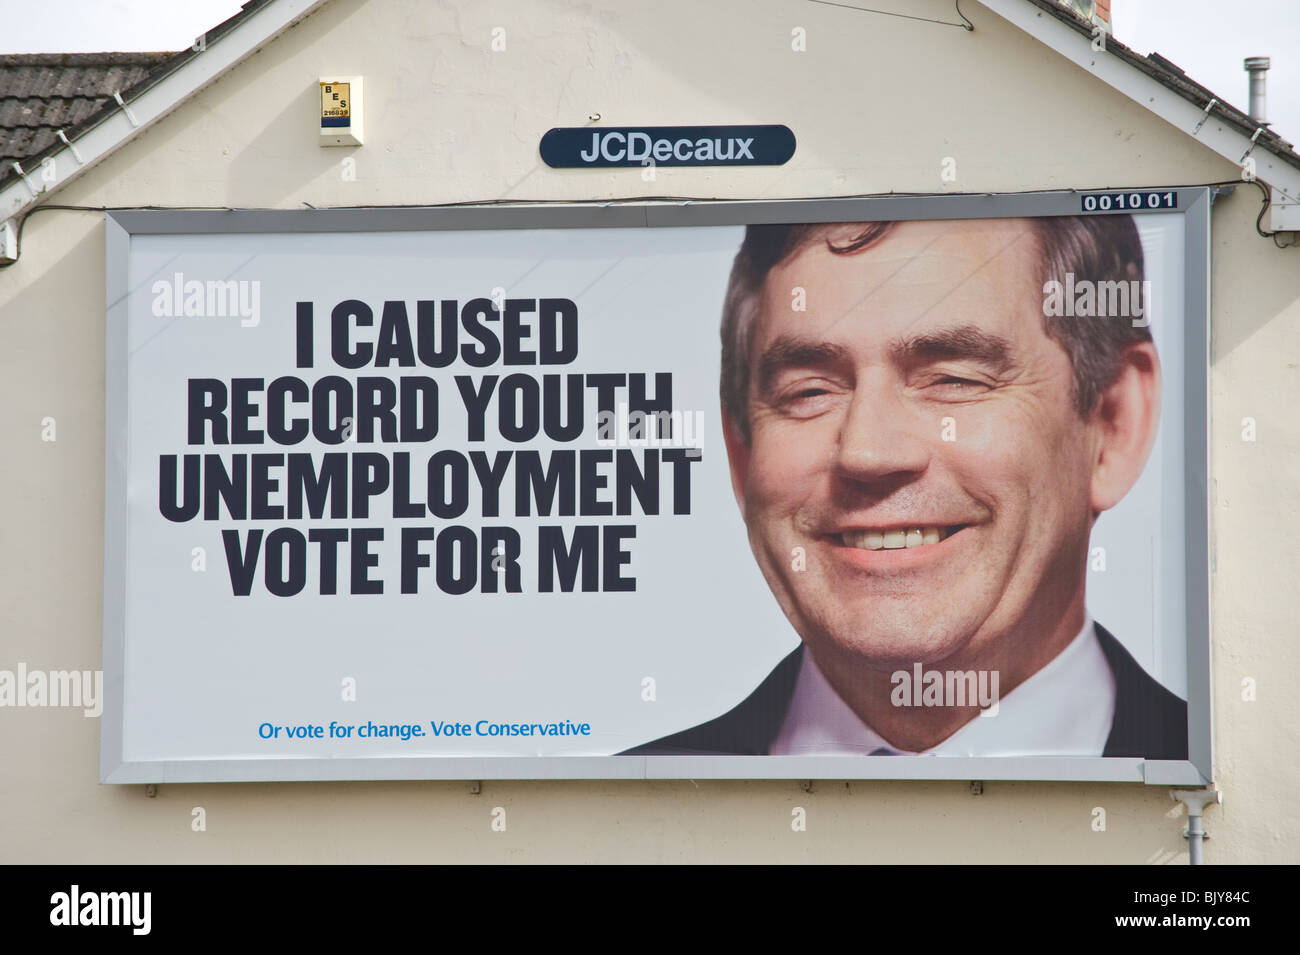 Conservative Party 2010 General Election billboard featuring Gordon Brown at JCDecaux site on end of terraced house - Stock Image